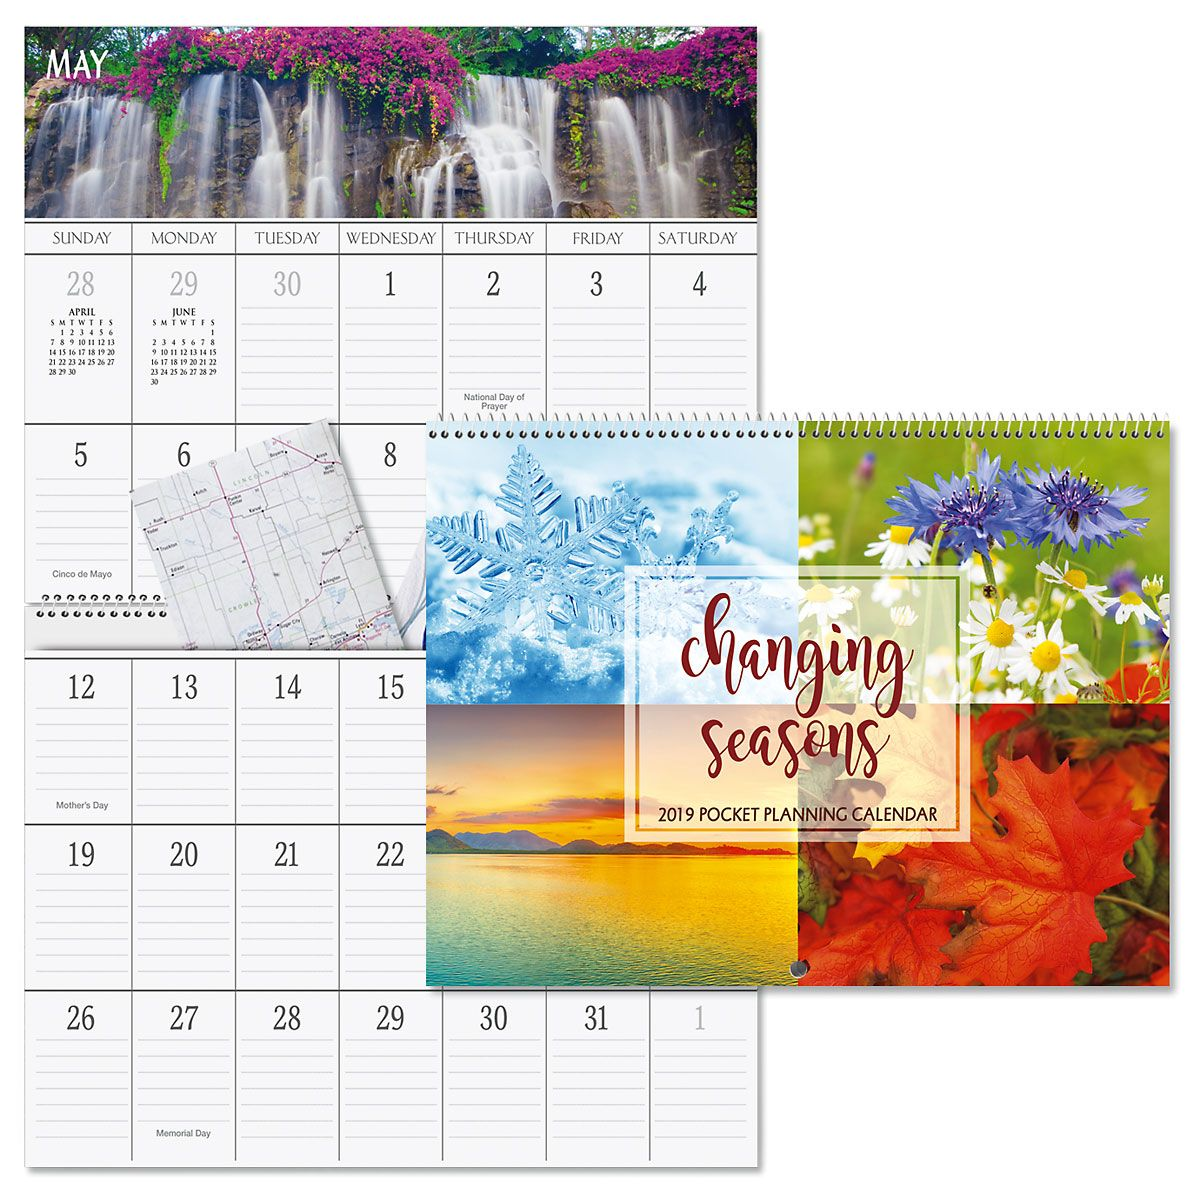 2019 Four Seasons Big Grid Planning Calendar with Pockets